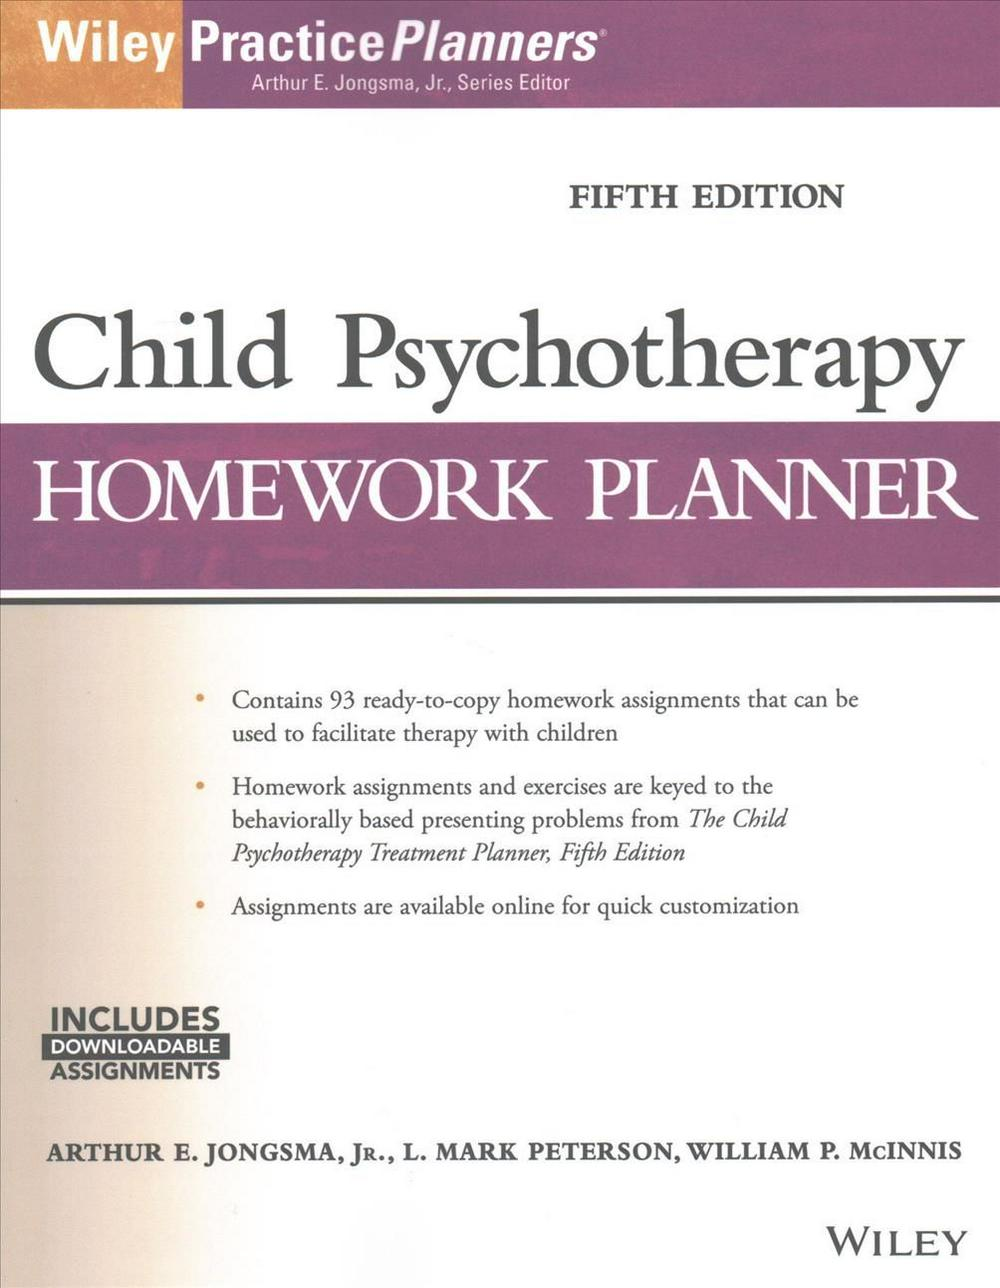 Child Psychotherapy Homework Planner, Fifth EditionPracticePlanners